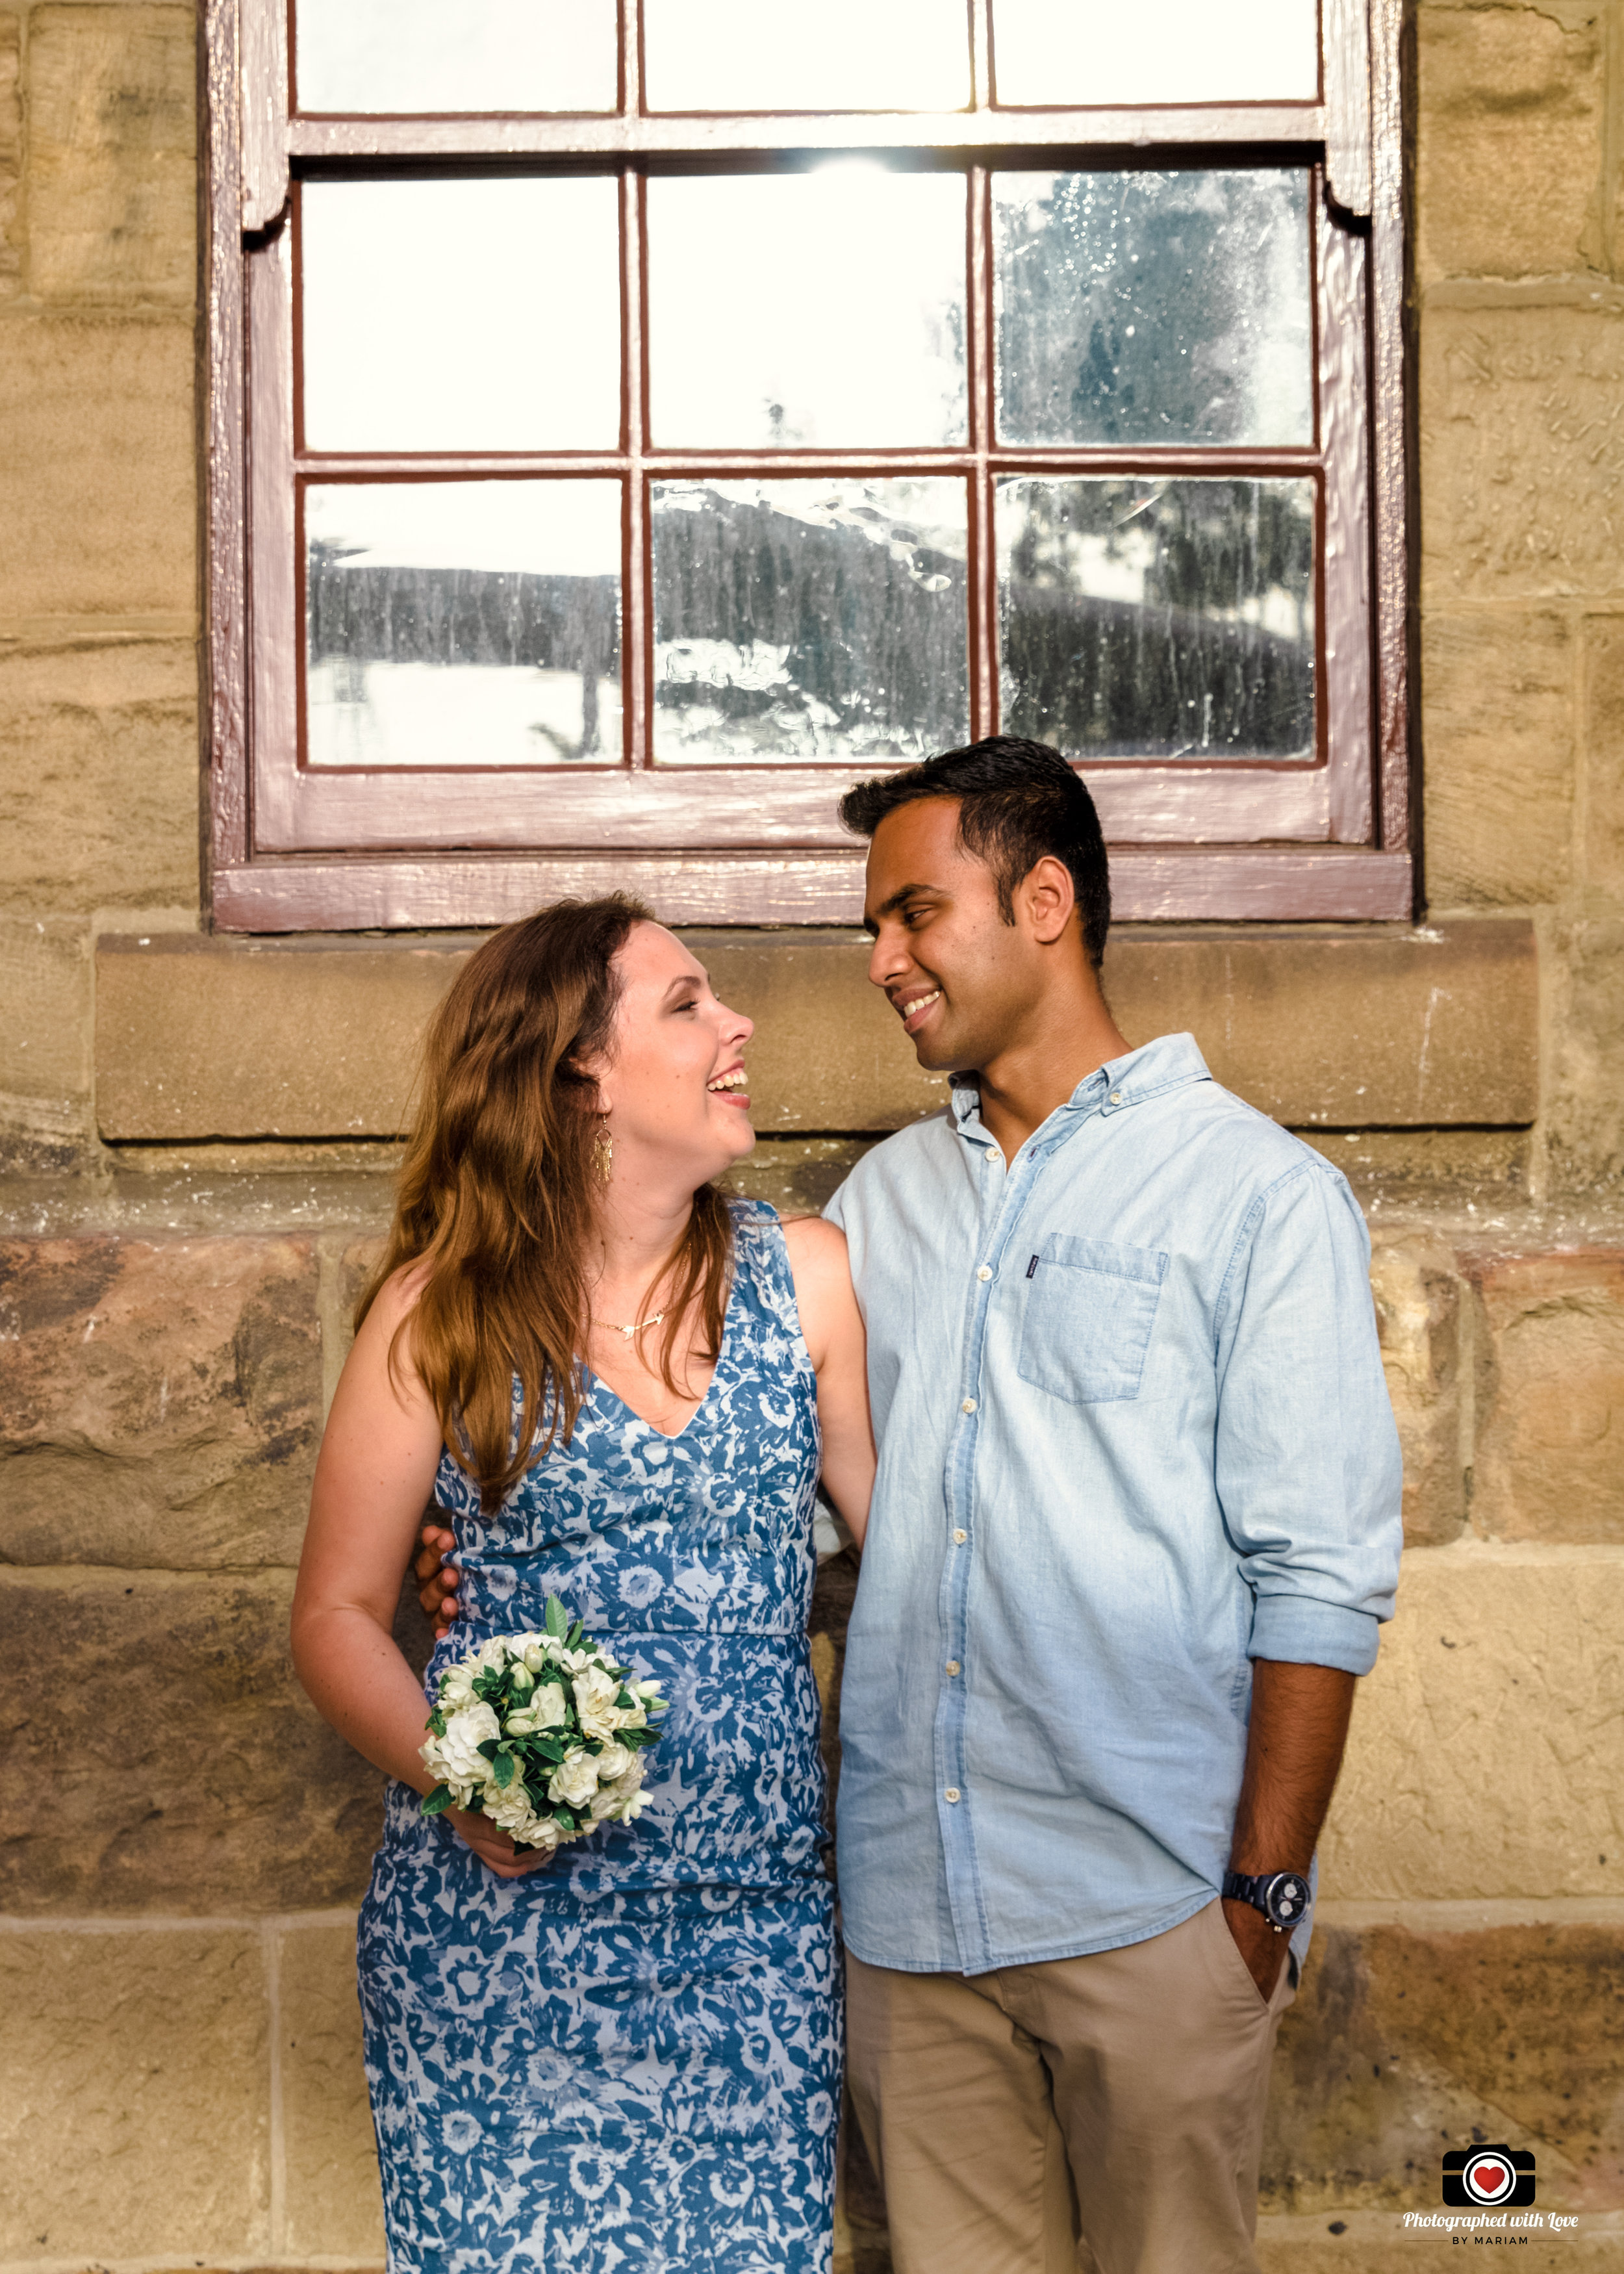 Photographed With Love - Sydney engagement photography